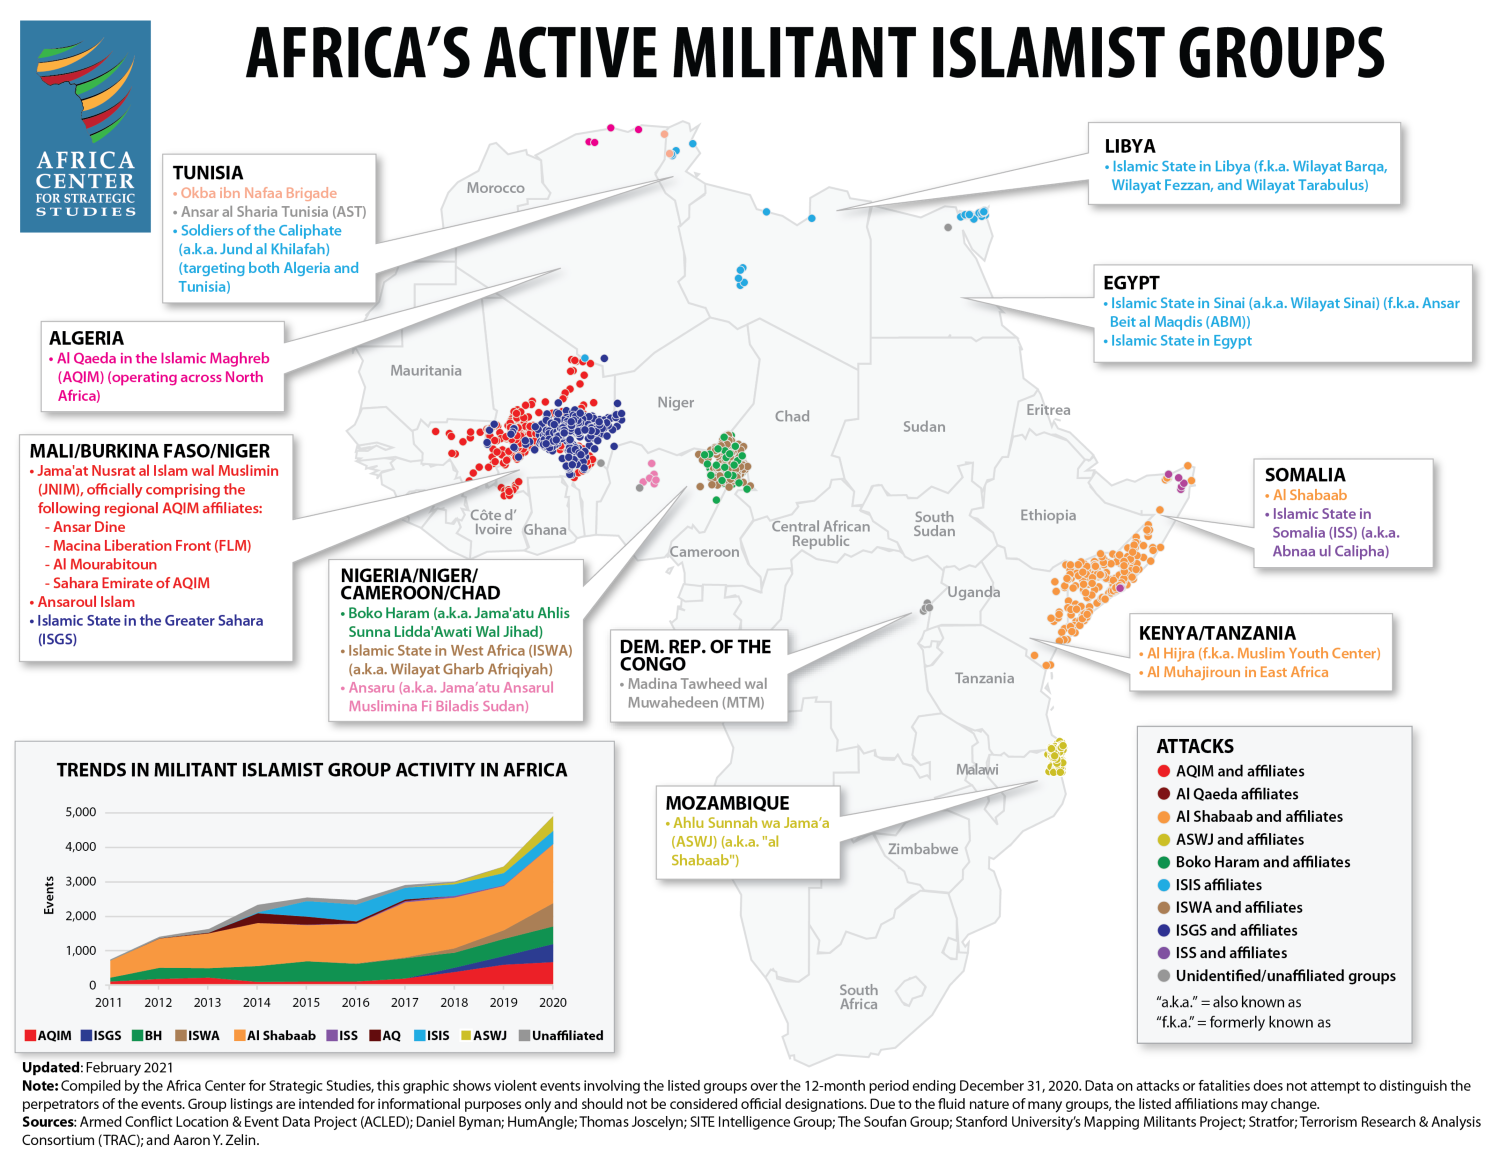 Militant Islamist group activity in Africa in 2020